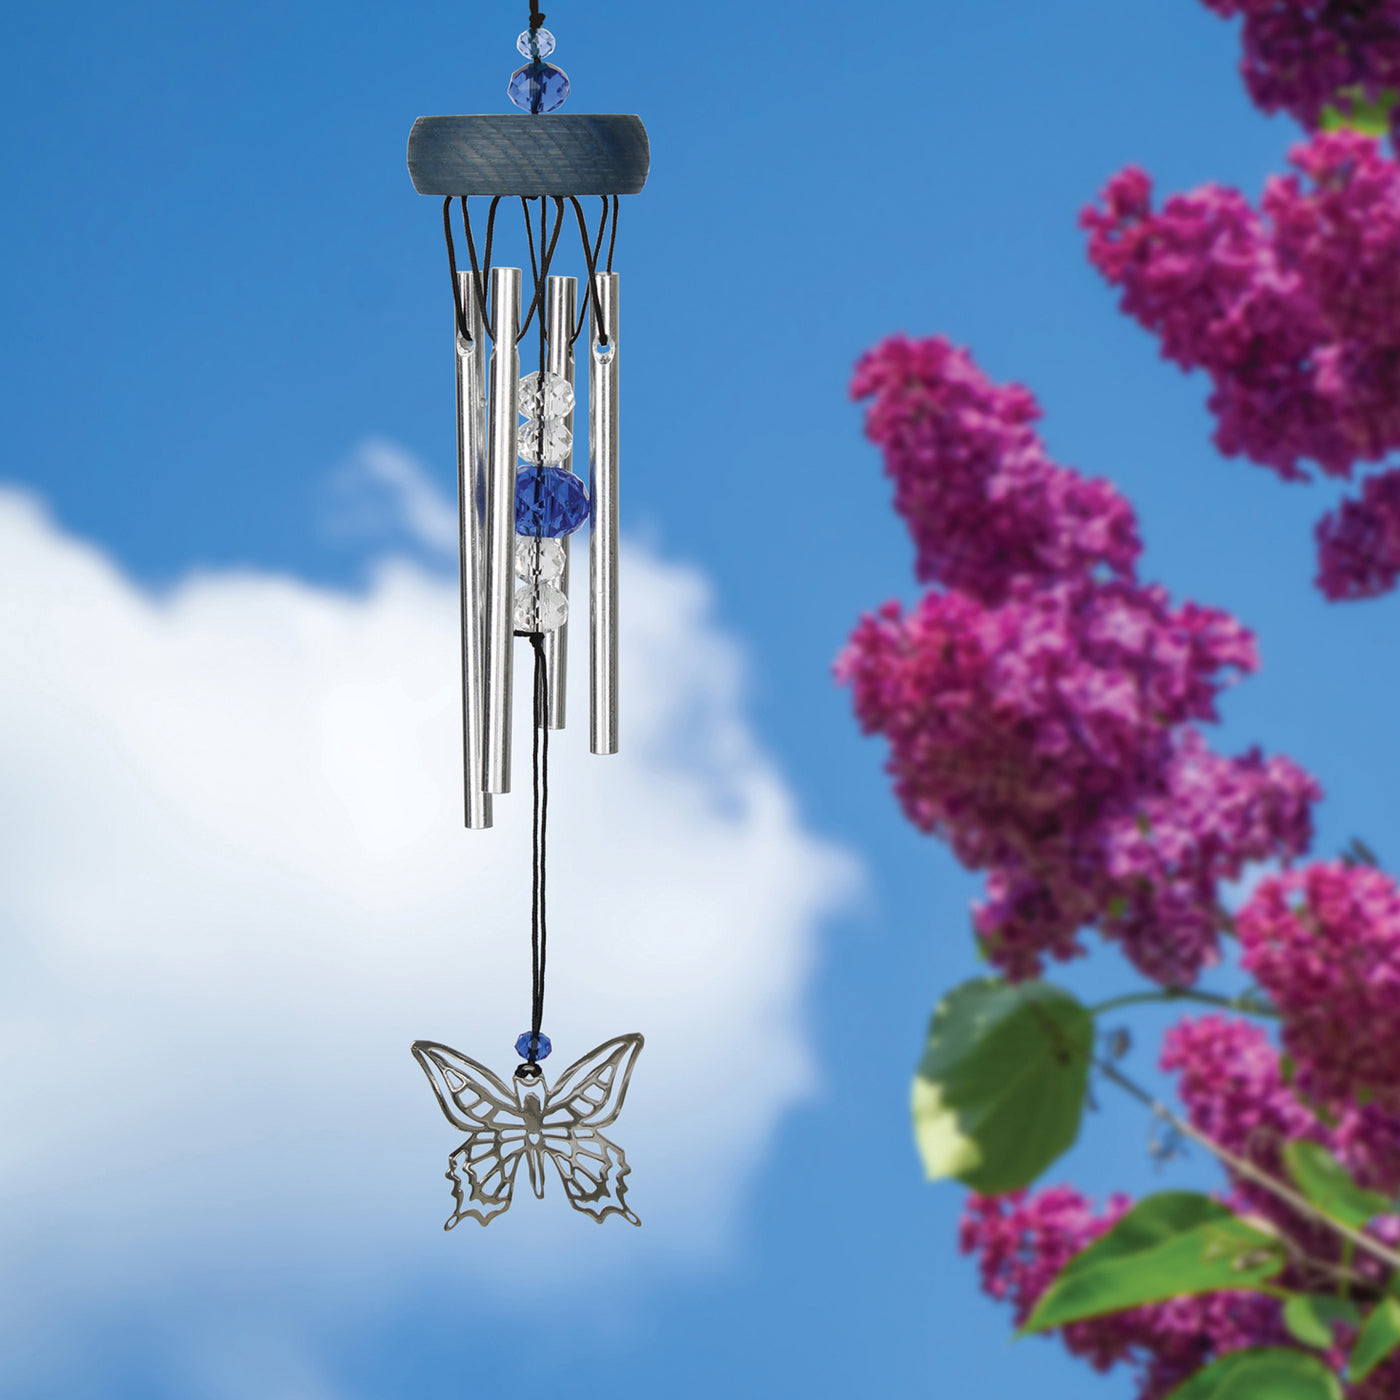 Wind Chimes - Memorial Wind Chimes - Healing Hearts Journey | Sympathy Gifts & Condolences Keepsakes